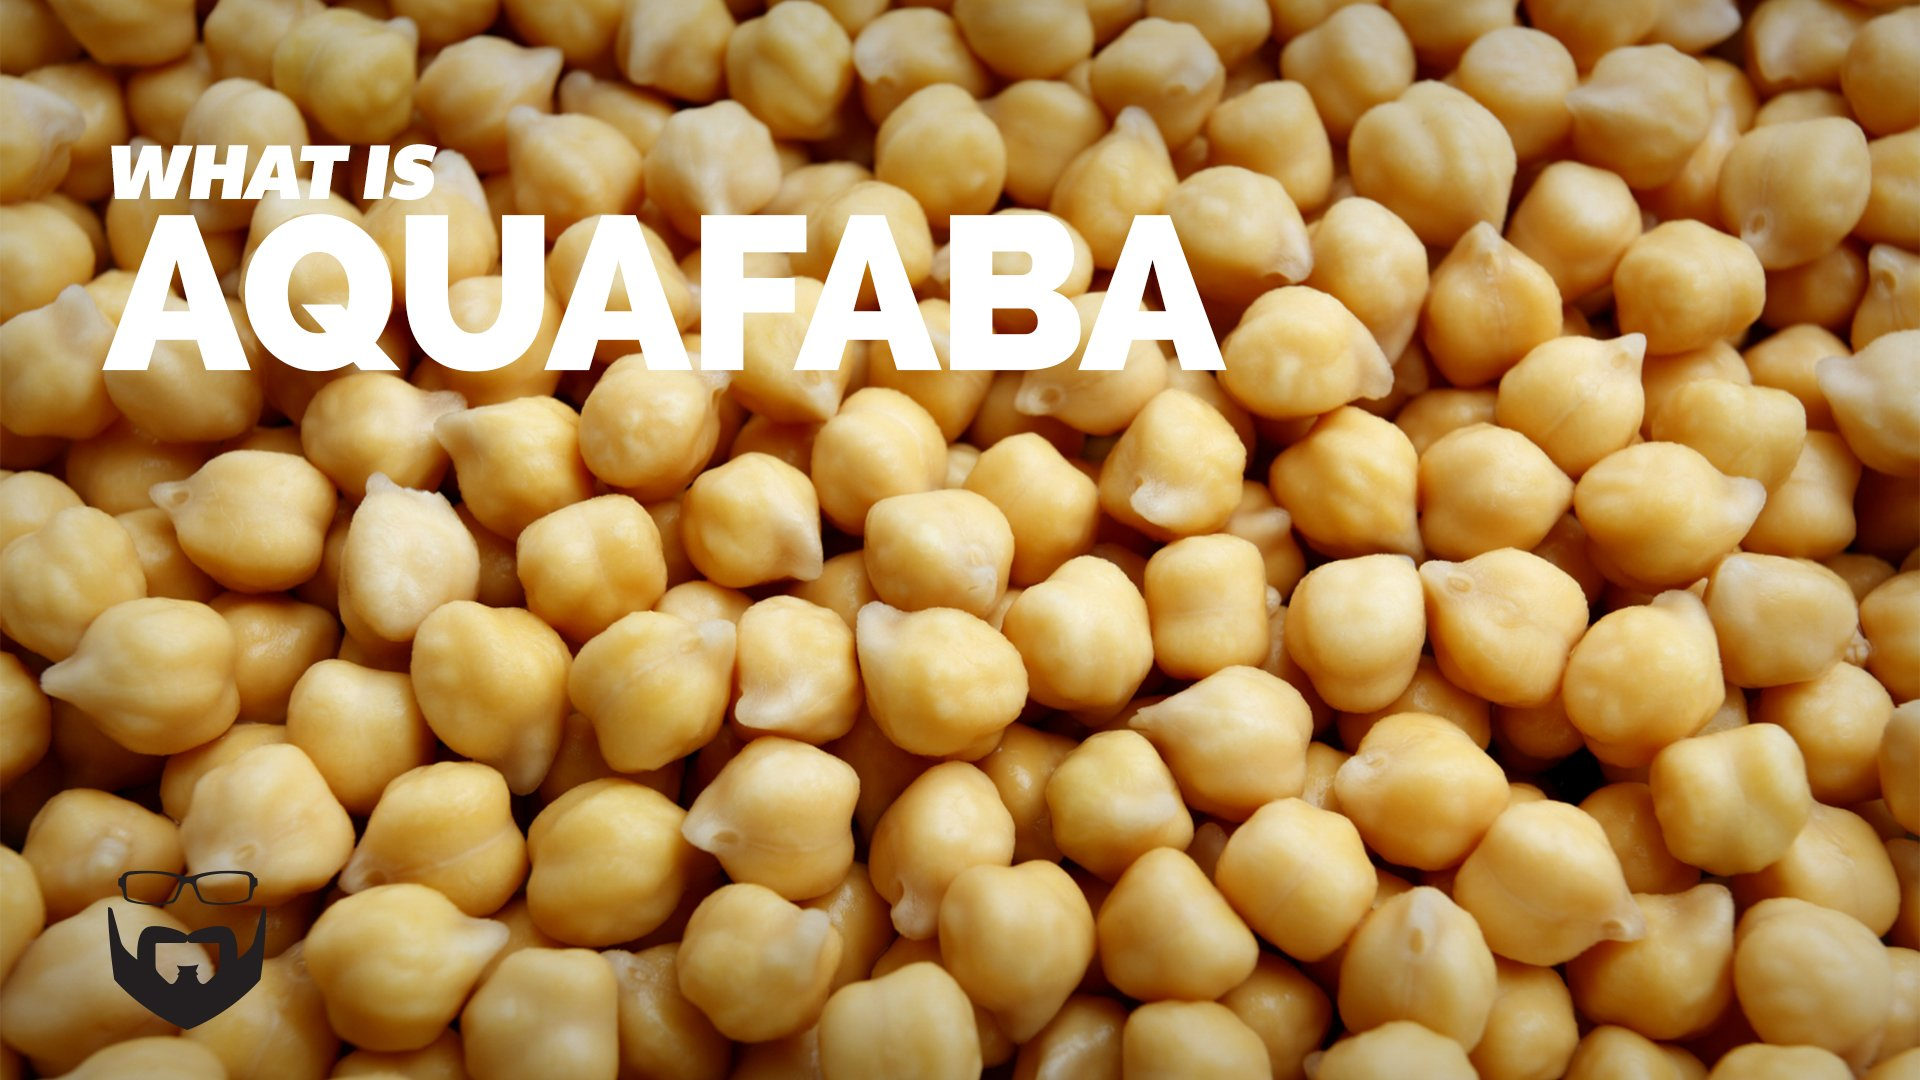 What is Aquafaba?